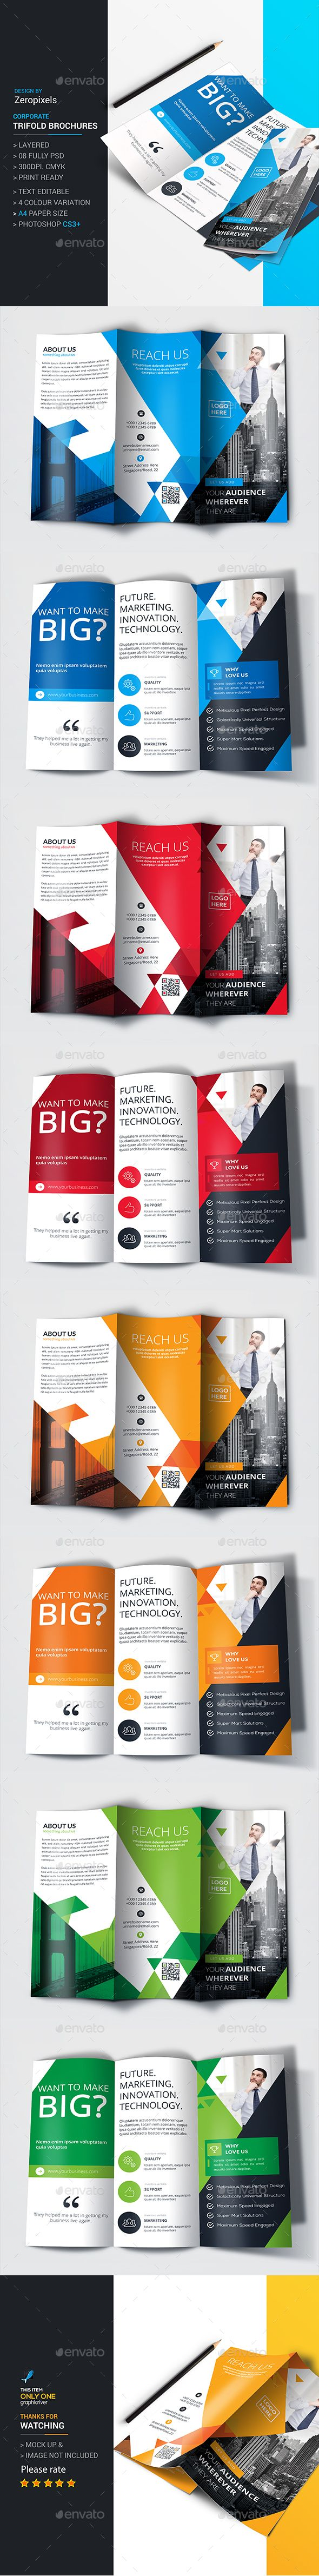 PSD Awesome Simple Trifold Brochure  Template • Only available here ➝ http://graphicriver.net/item/trifold-brochure-/16387166?ref=pxcr